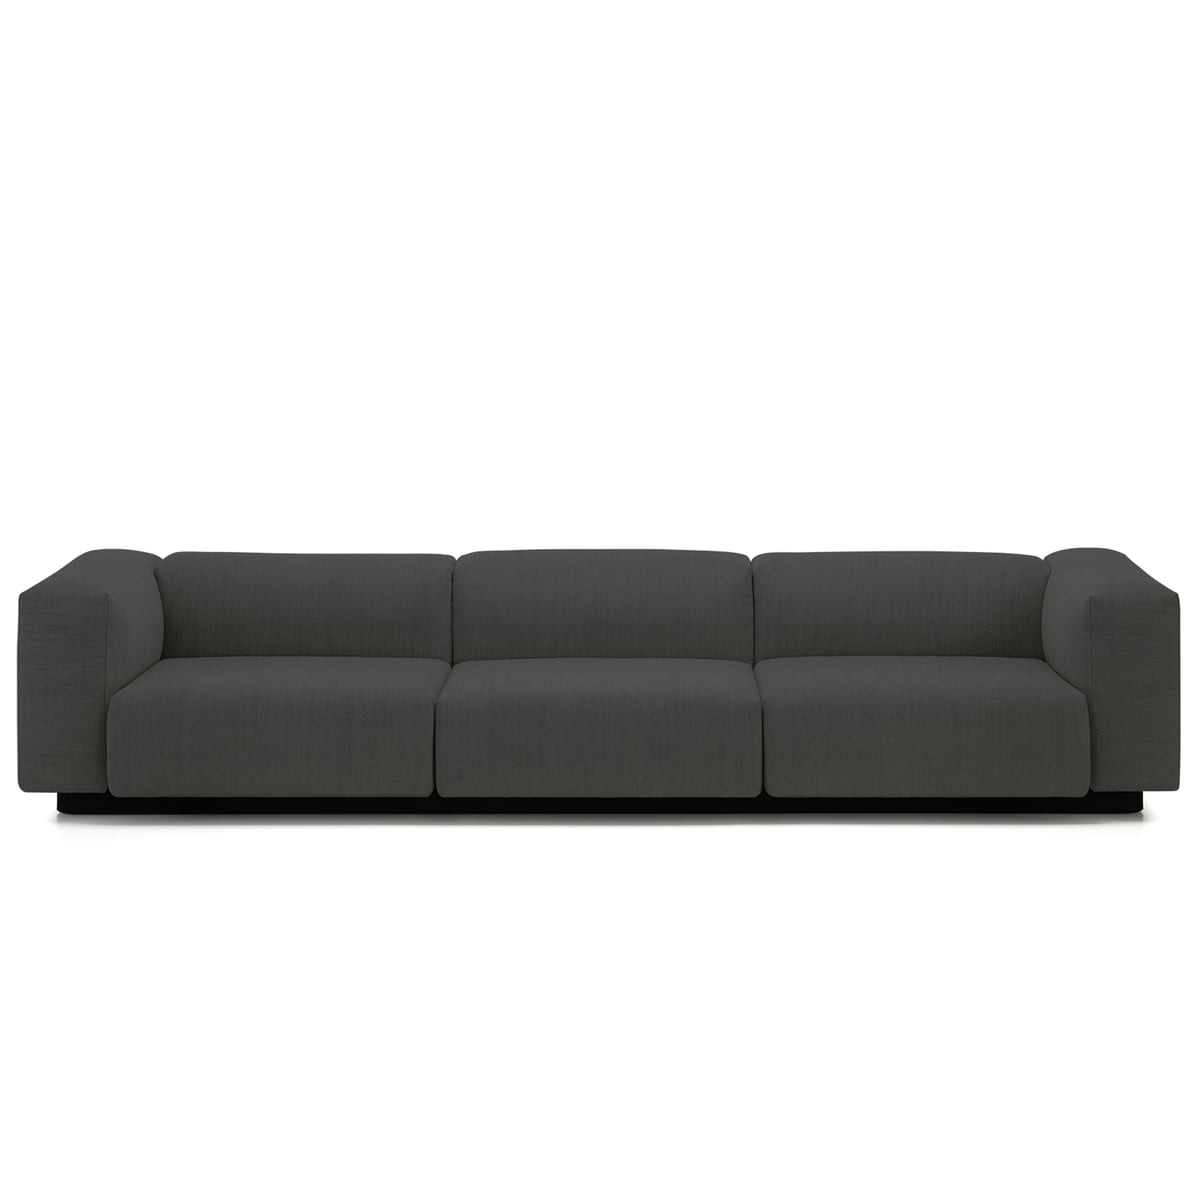 Soft Modular 3 Seater Sofa From Vitra In Anthracite (Laser 03)